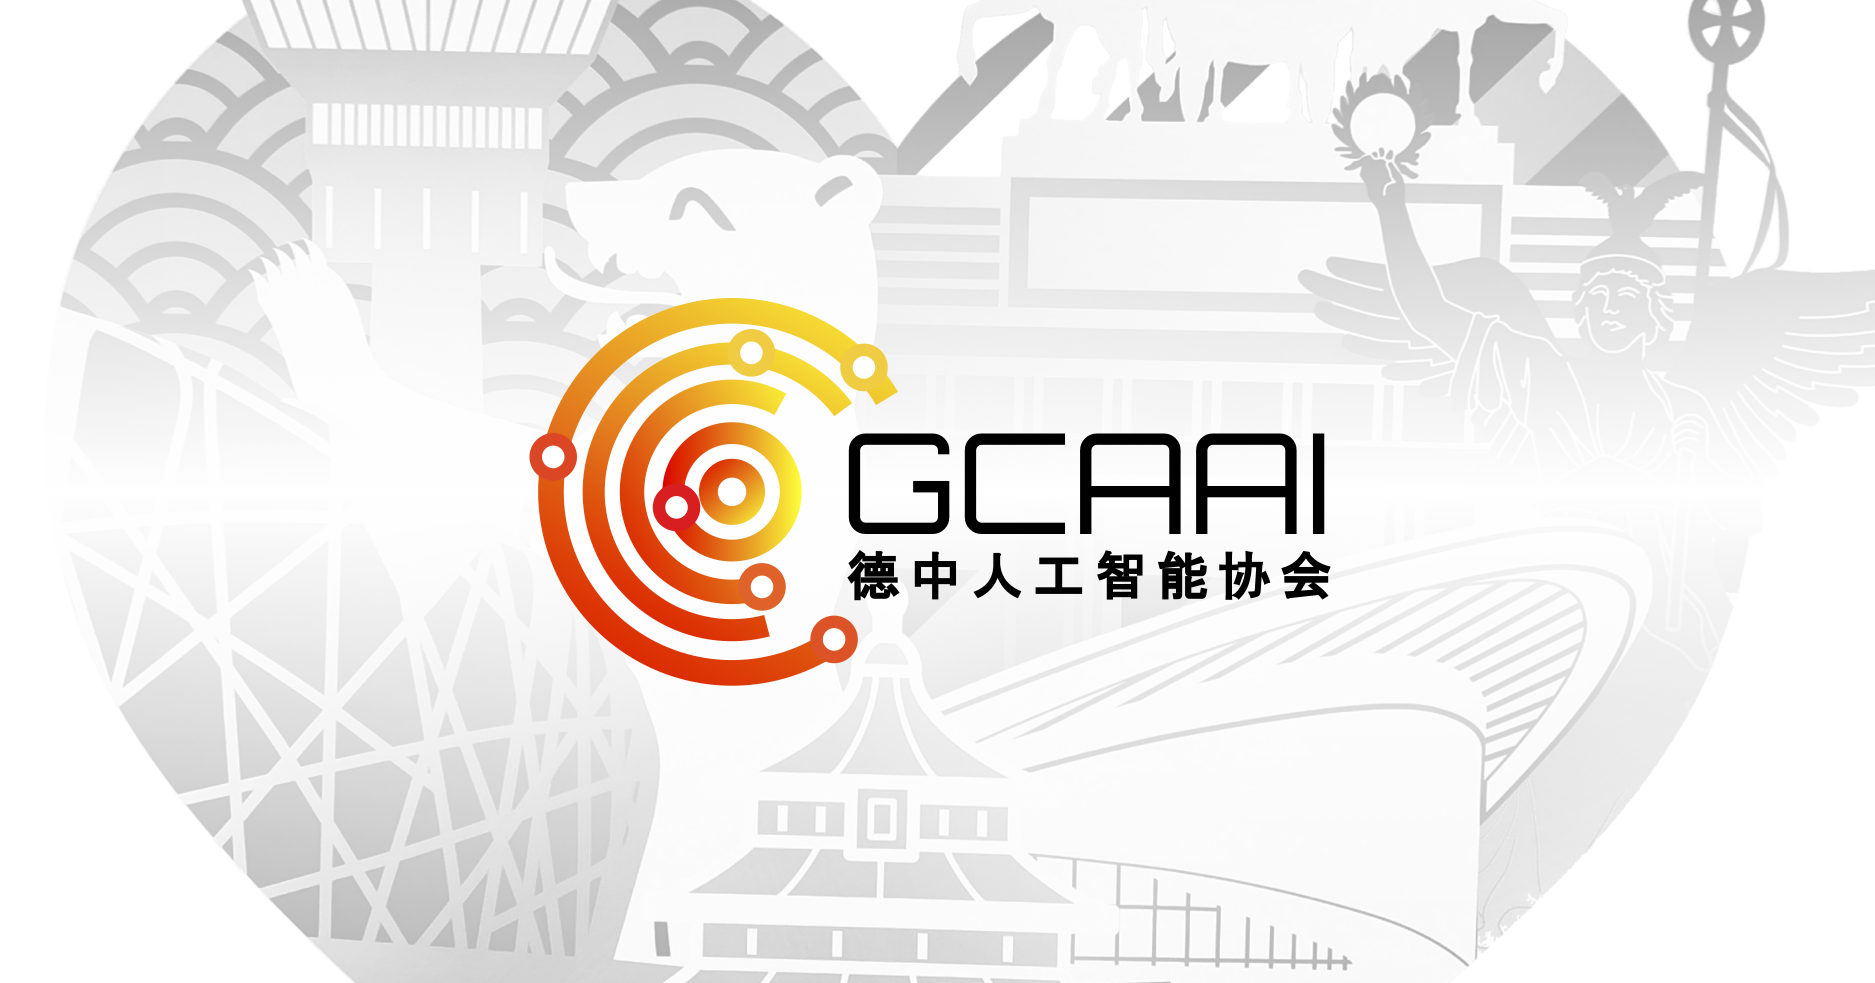 German-Chinese Association of Artificial Intelligence ®